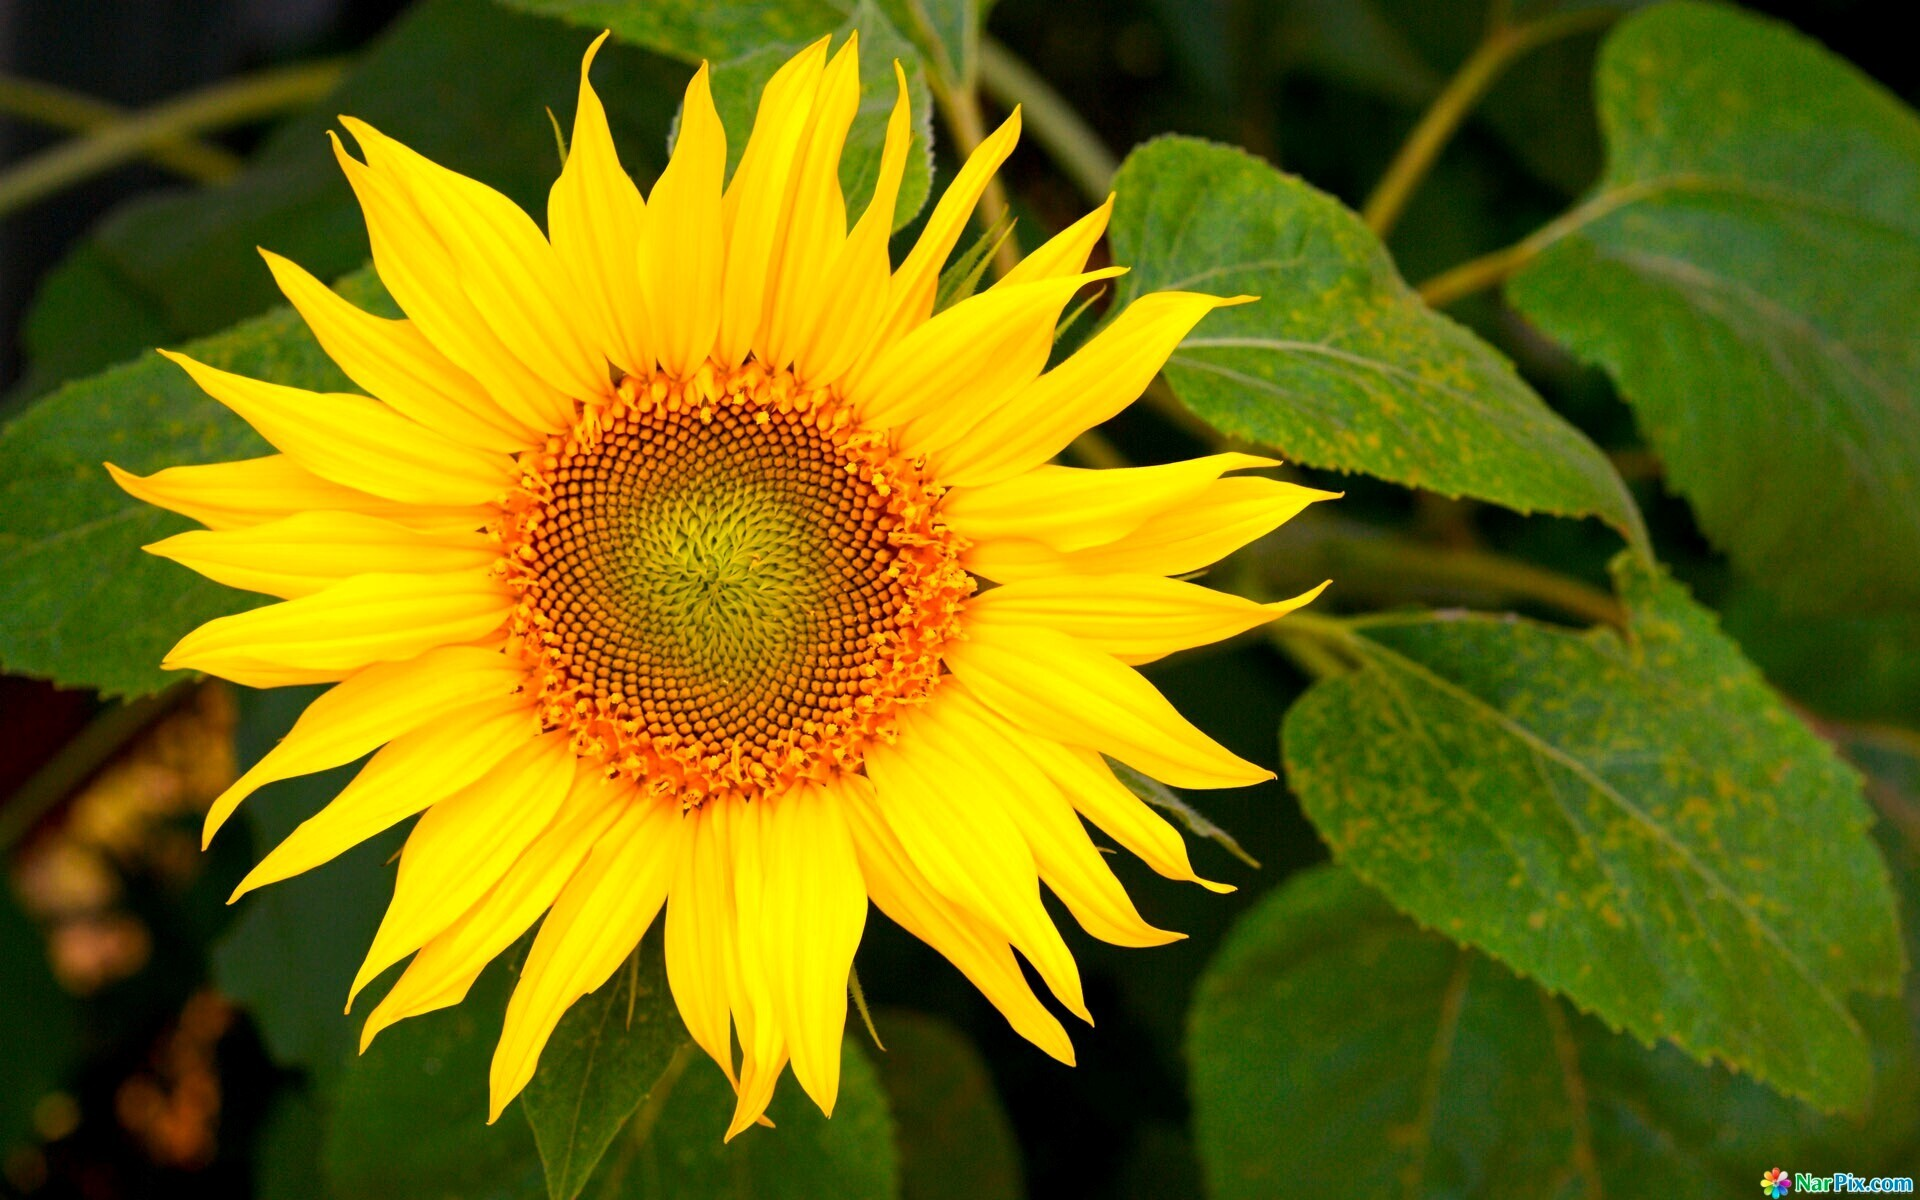 Yellow Sunflower Wallpapers Download | HD Wallpapers